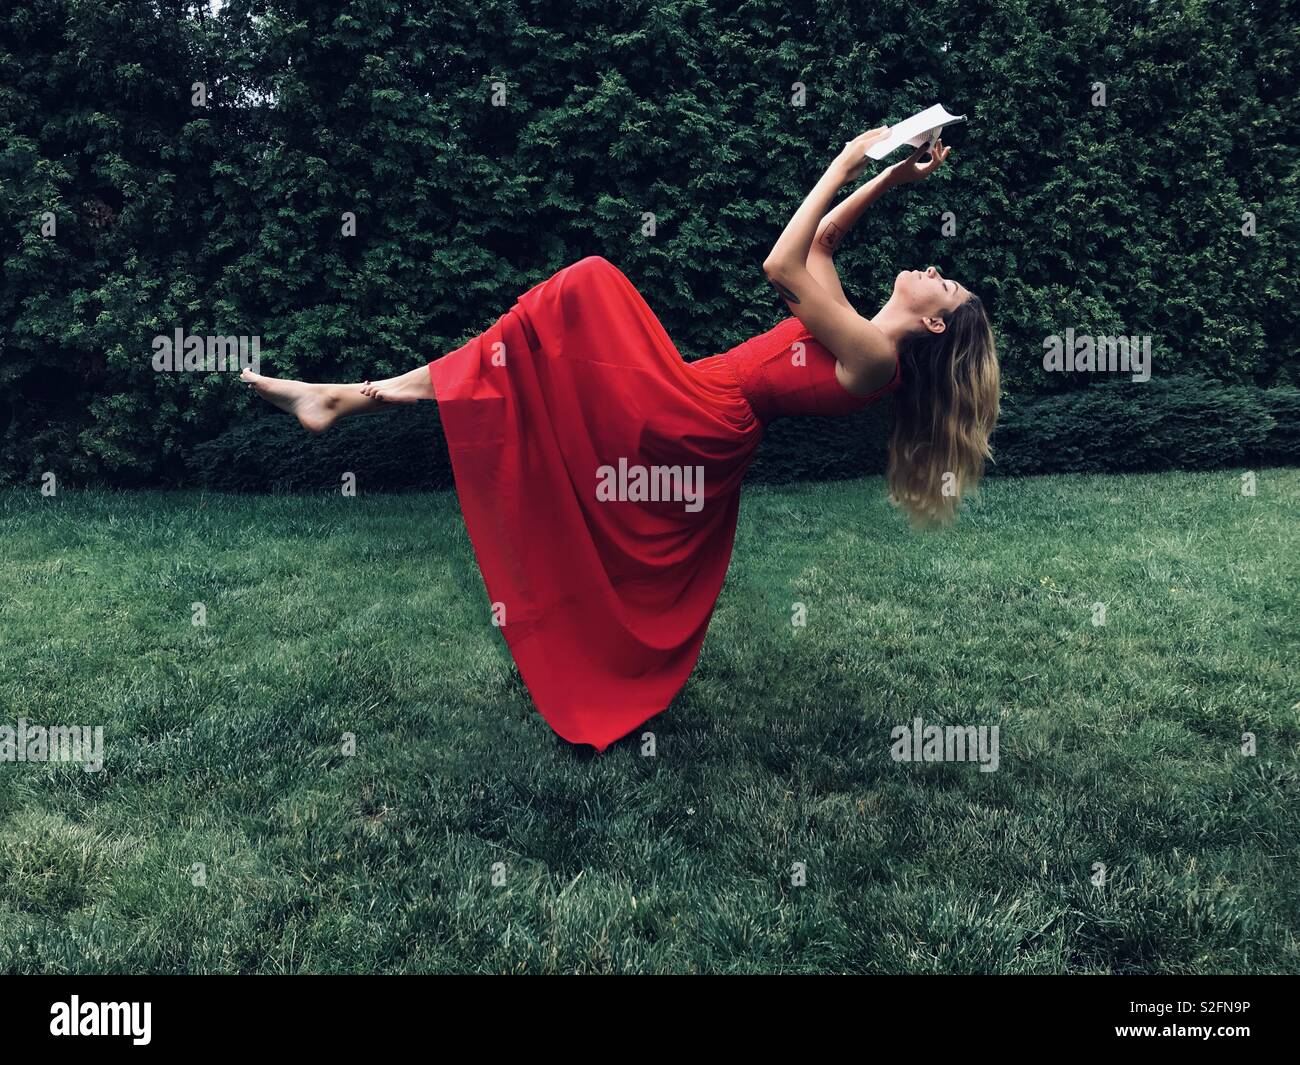 Girl in red dress flying with book Banque D'Images